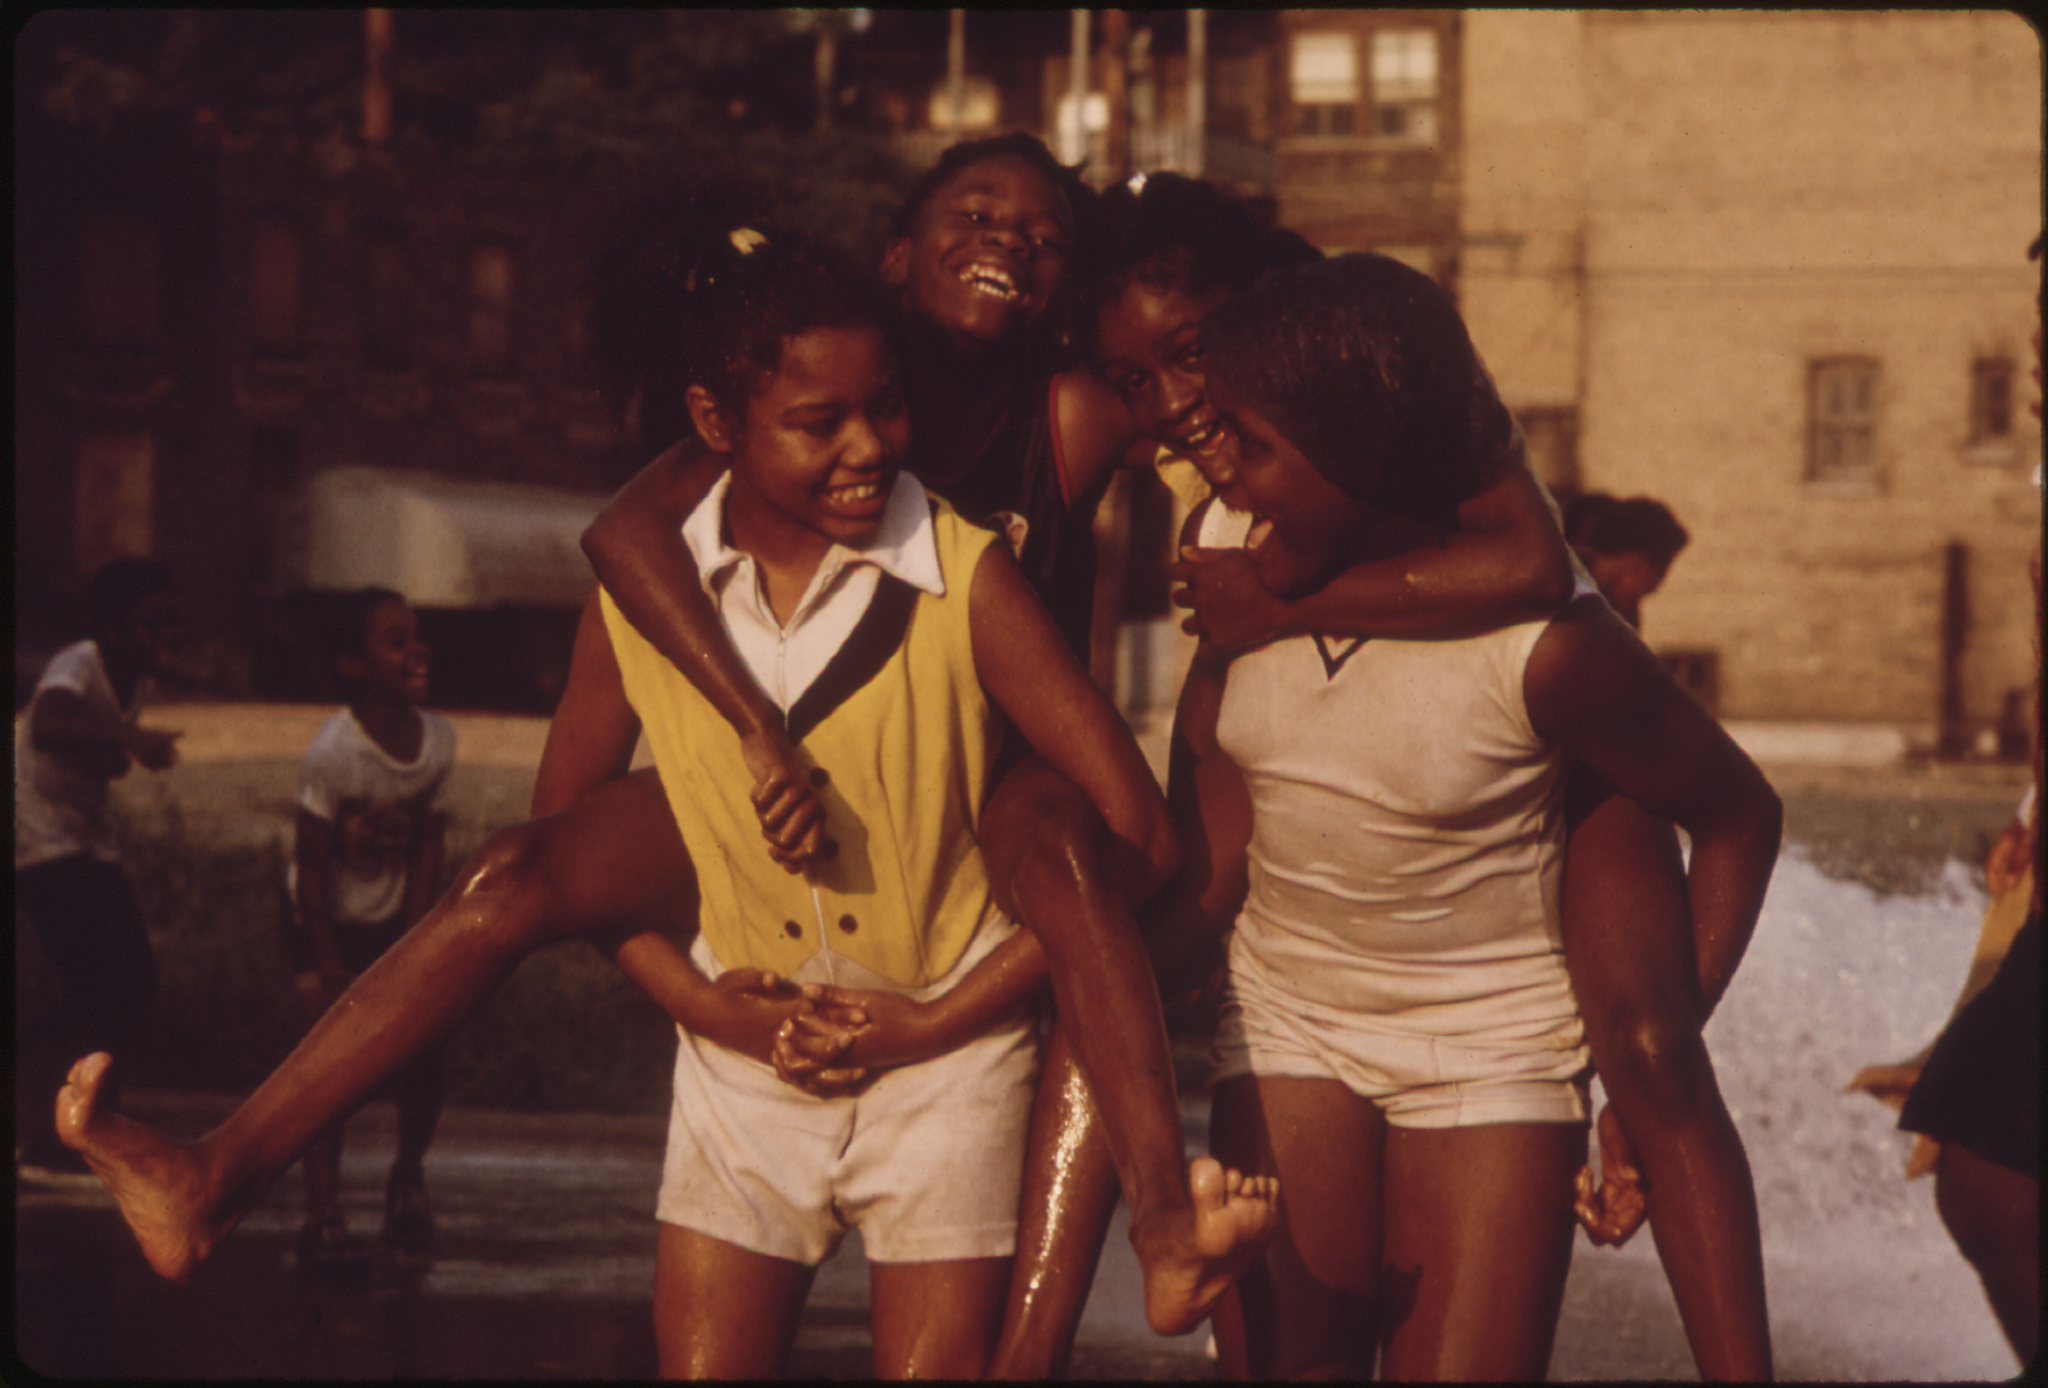 Woodlawn Community on Chicago's South Side in 1973